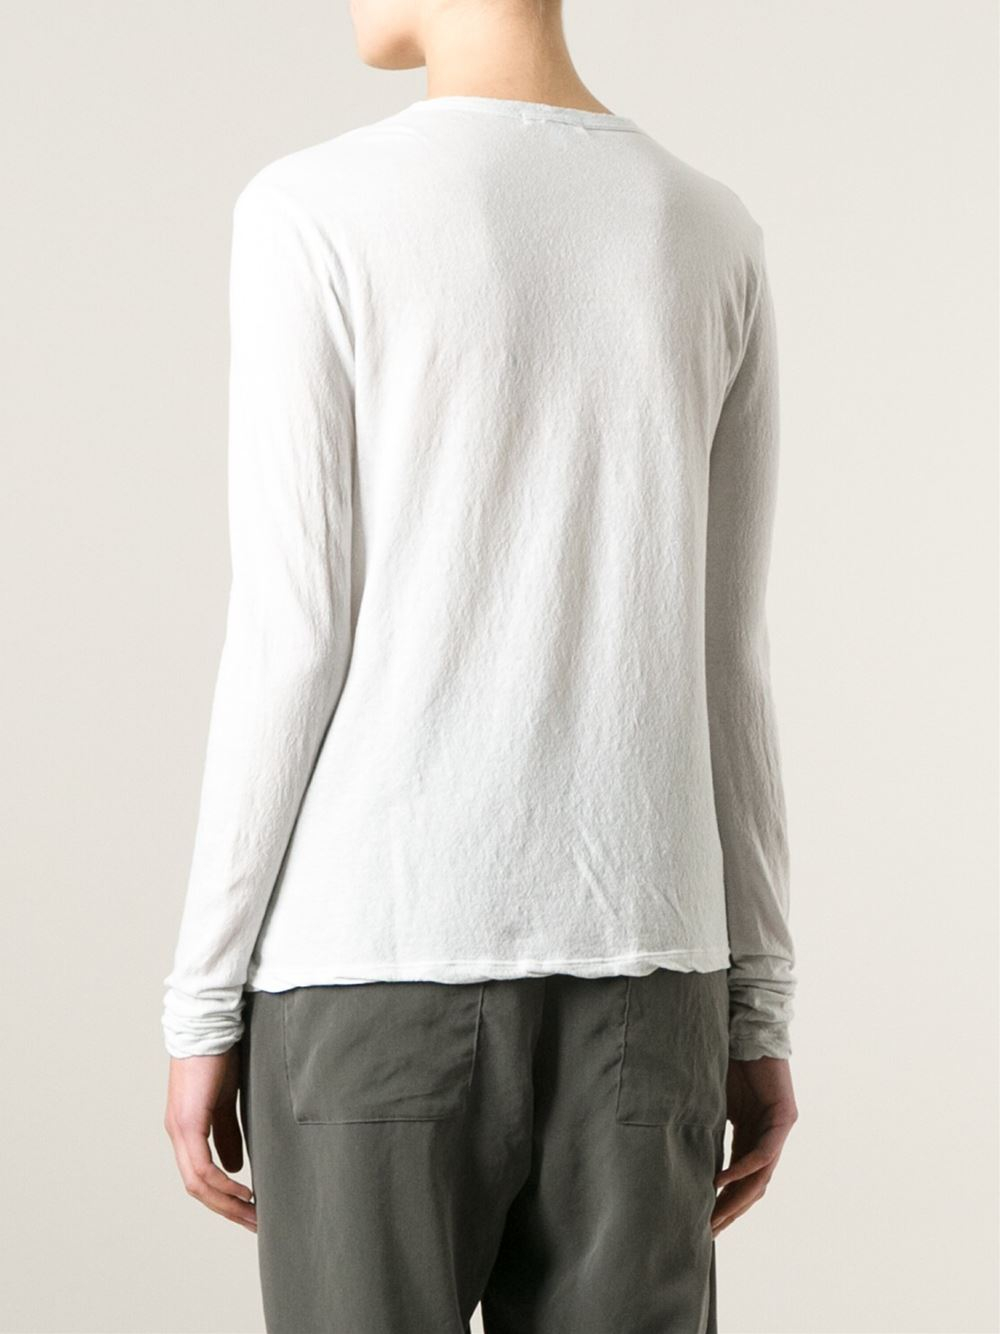 James perse scoop neck t shirt in gray grey lyst for James perse t shirts sale